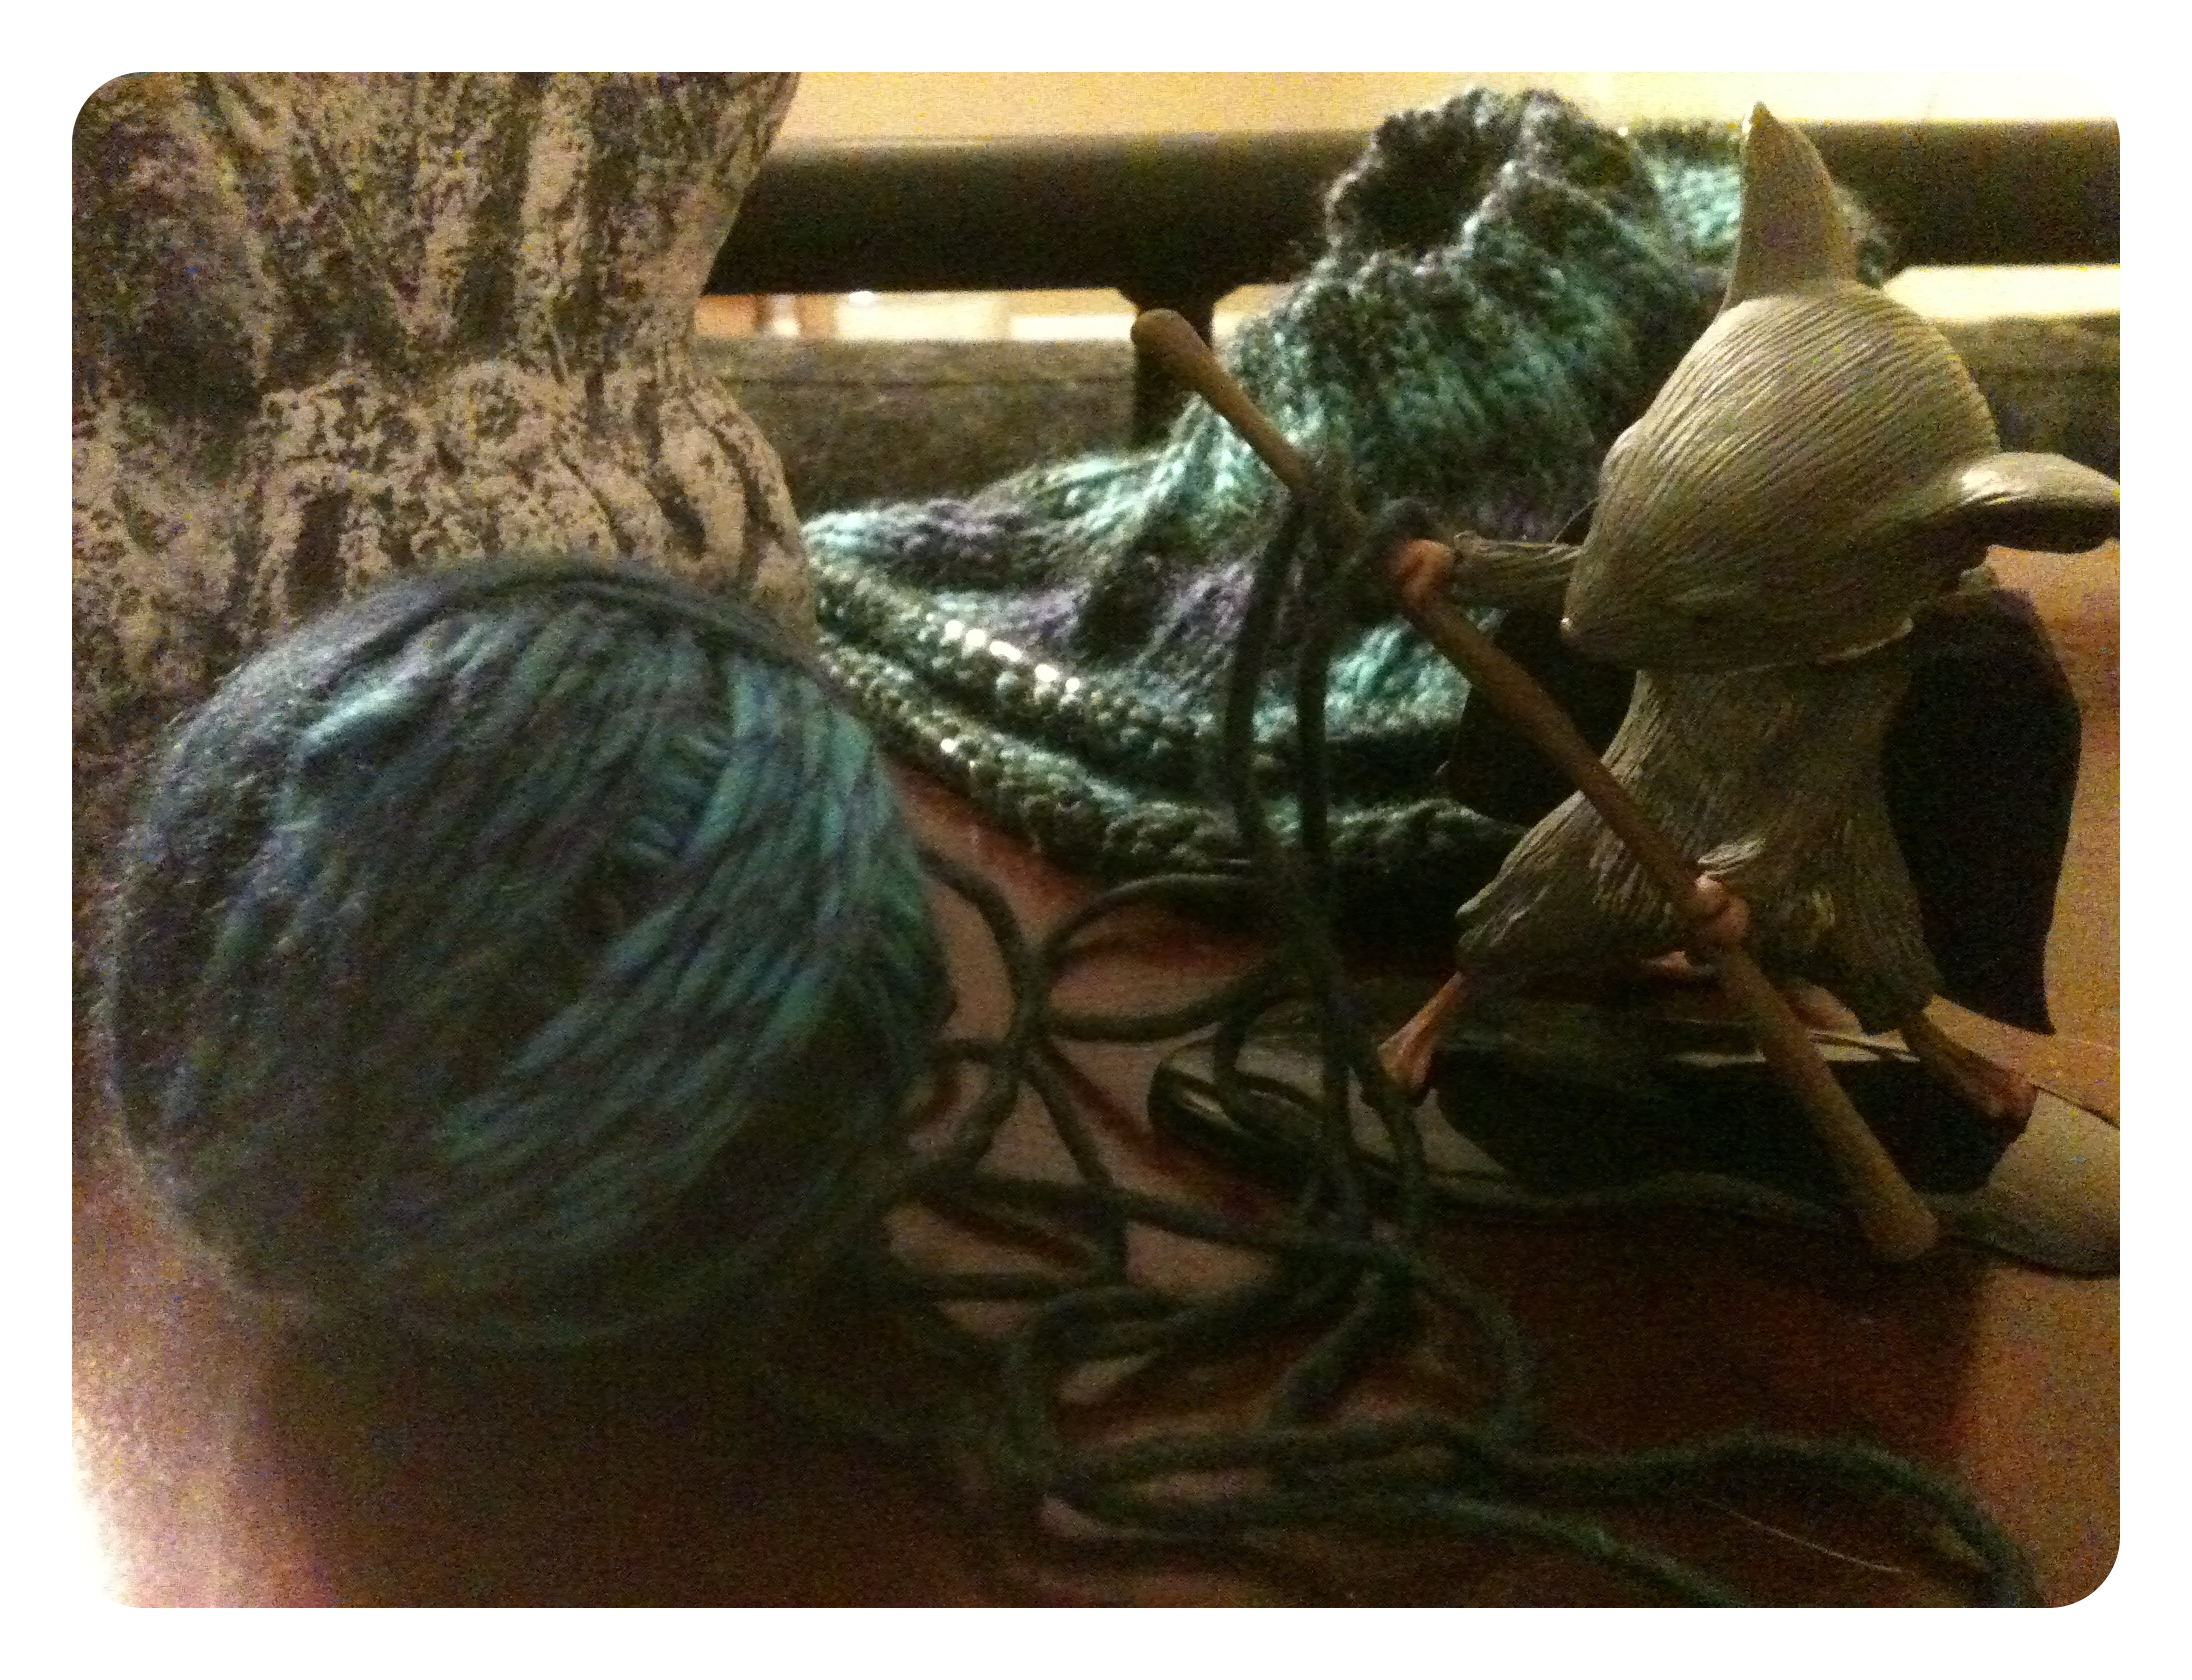 If You Give a Mouse Some Yarn: Knitting in MouseGuard